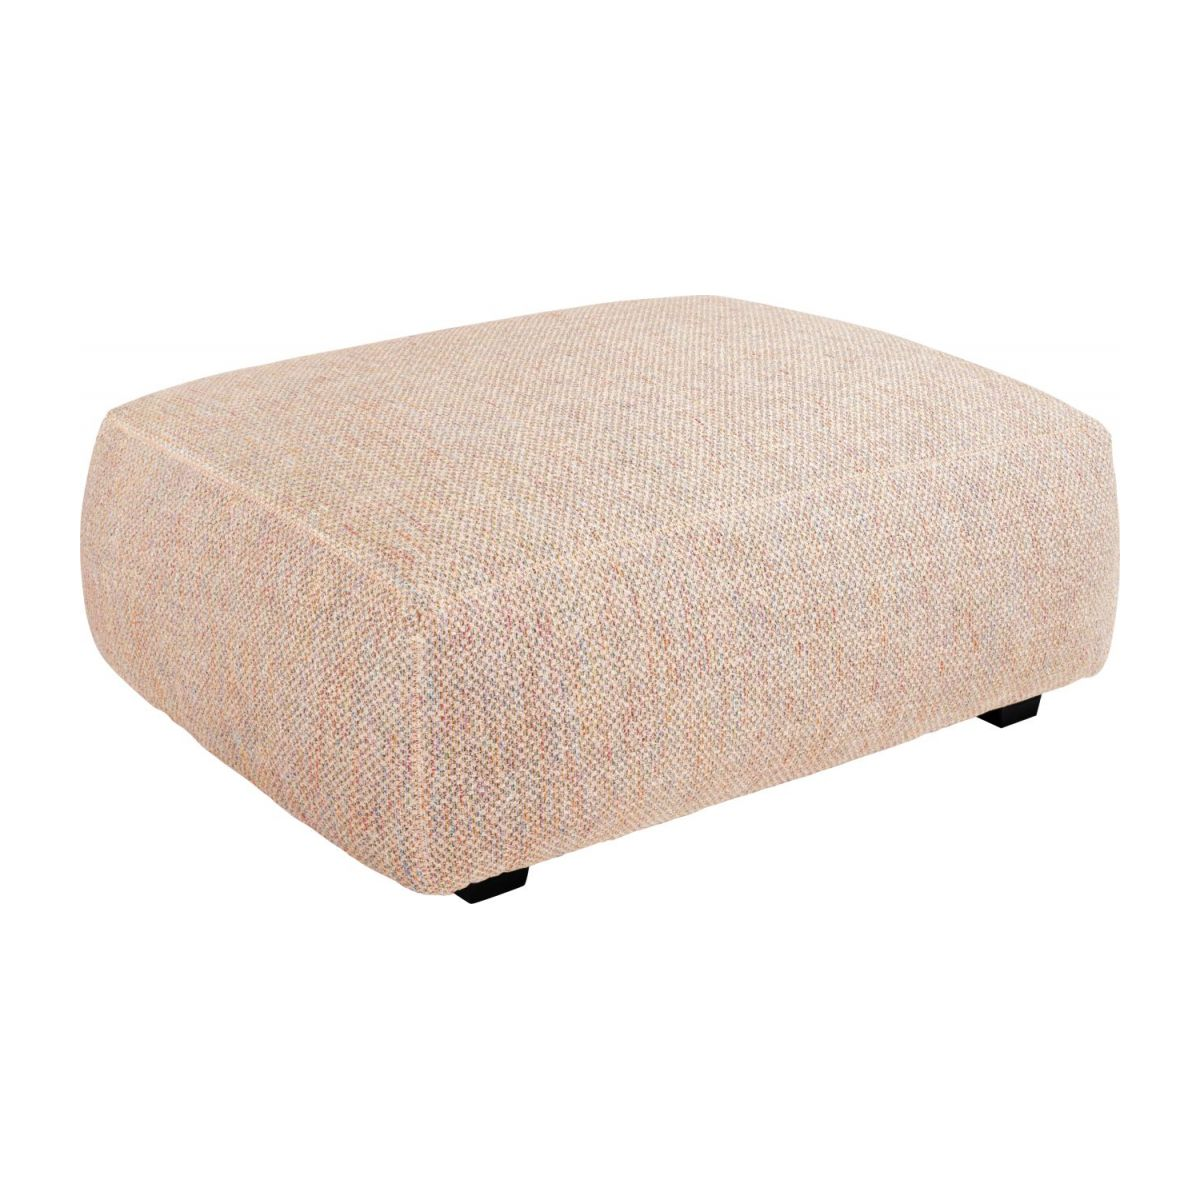 Footstool in Bellagio fabric, passion orange n°1